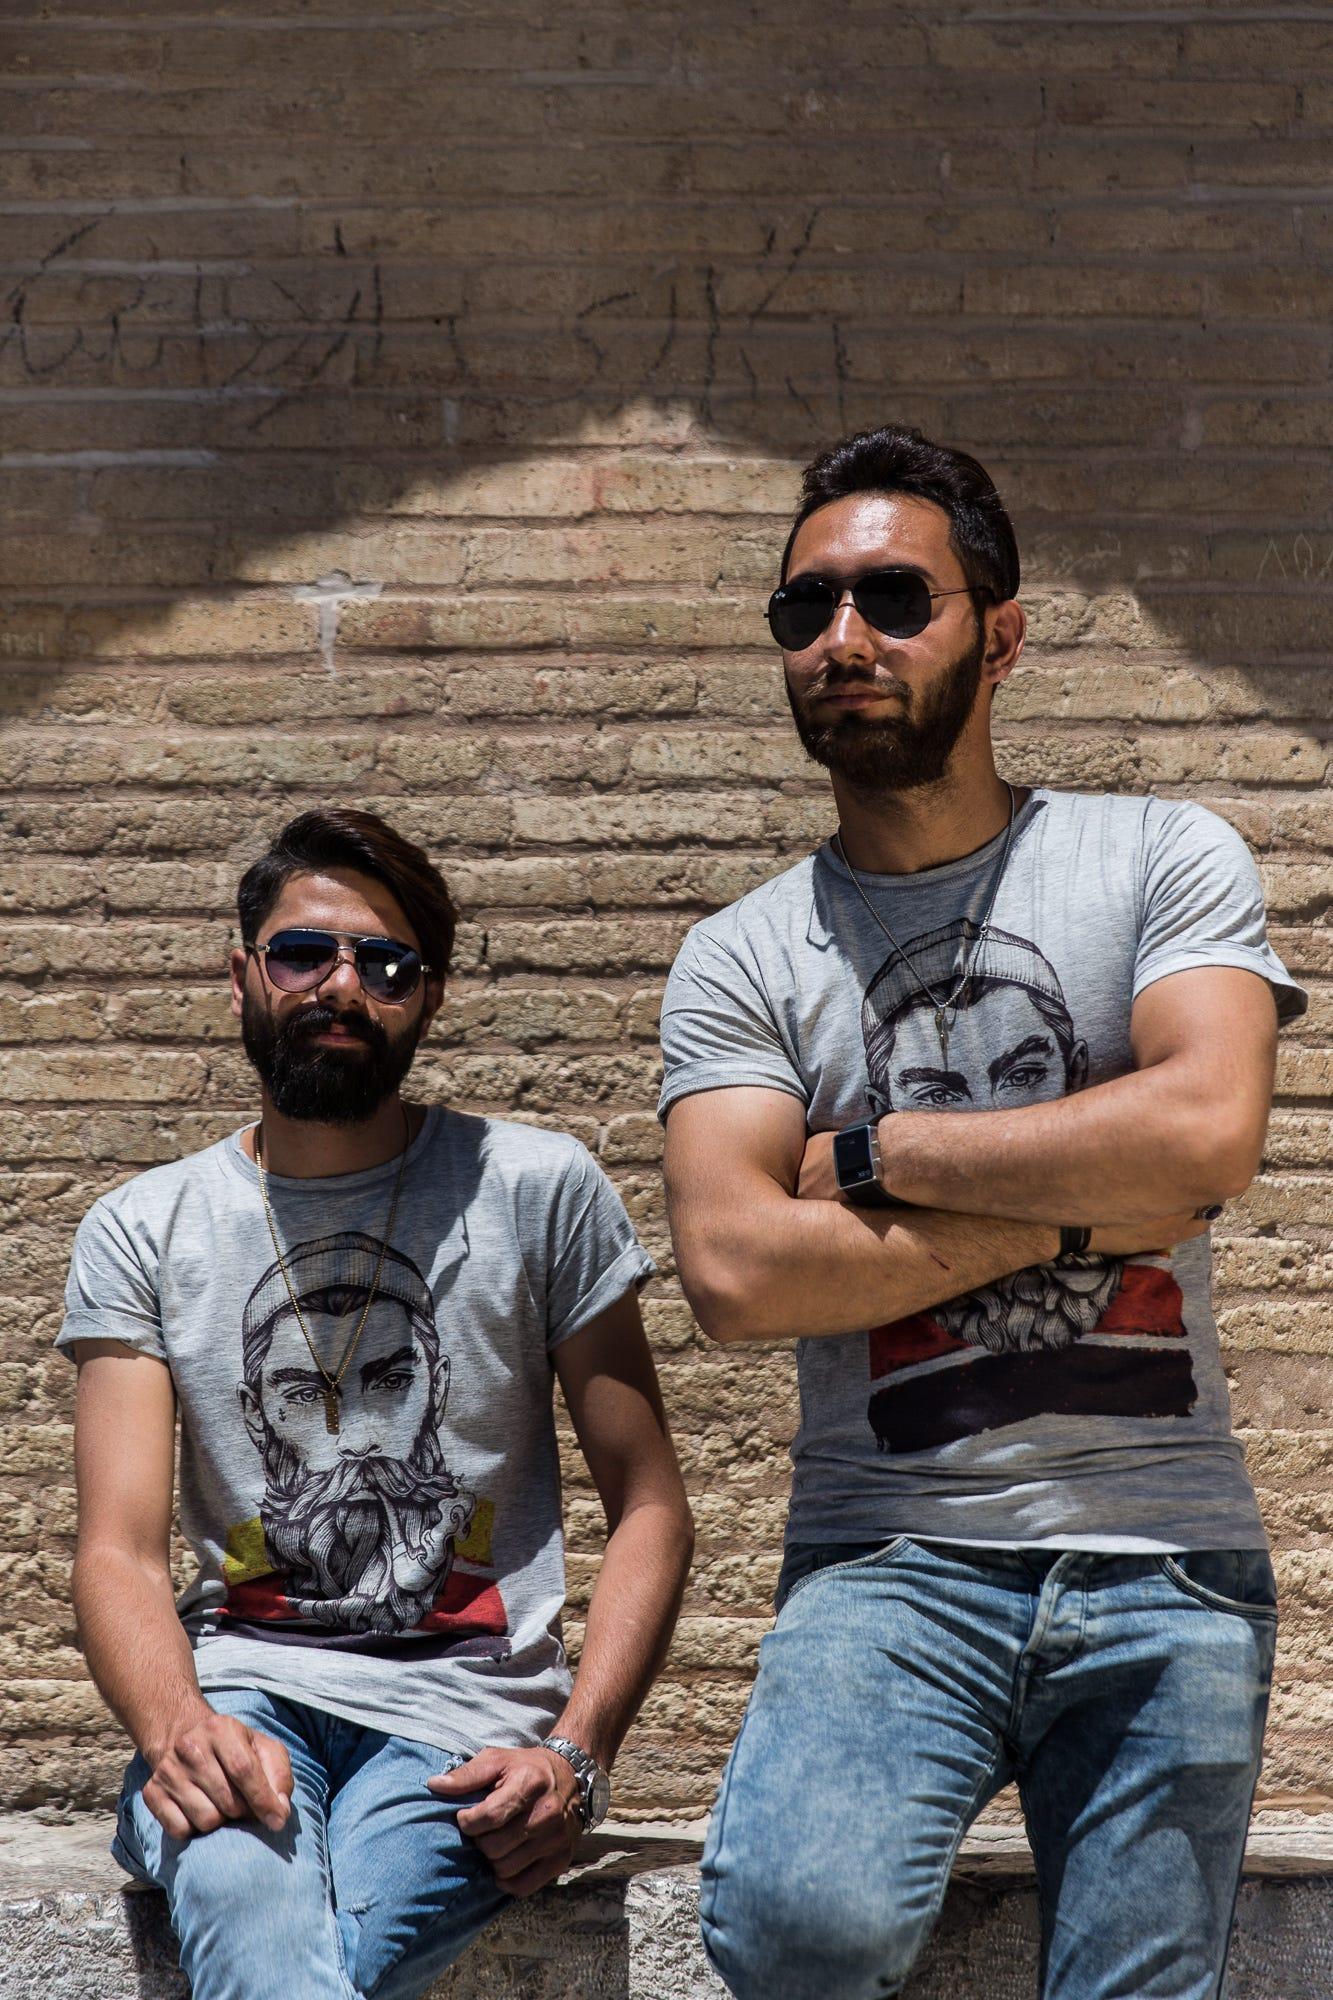 Iranian hipsters hang out in Isfahan. Some visitors might find it remarkable how similar Iran can be to the Western world.